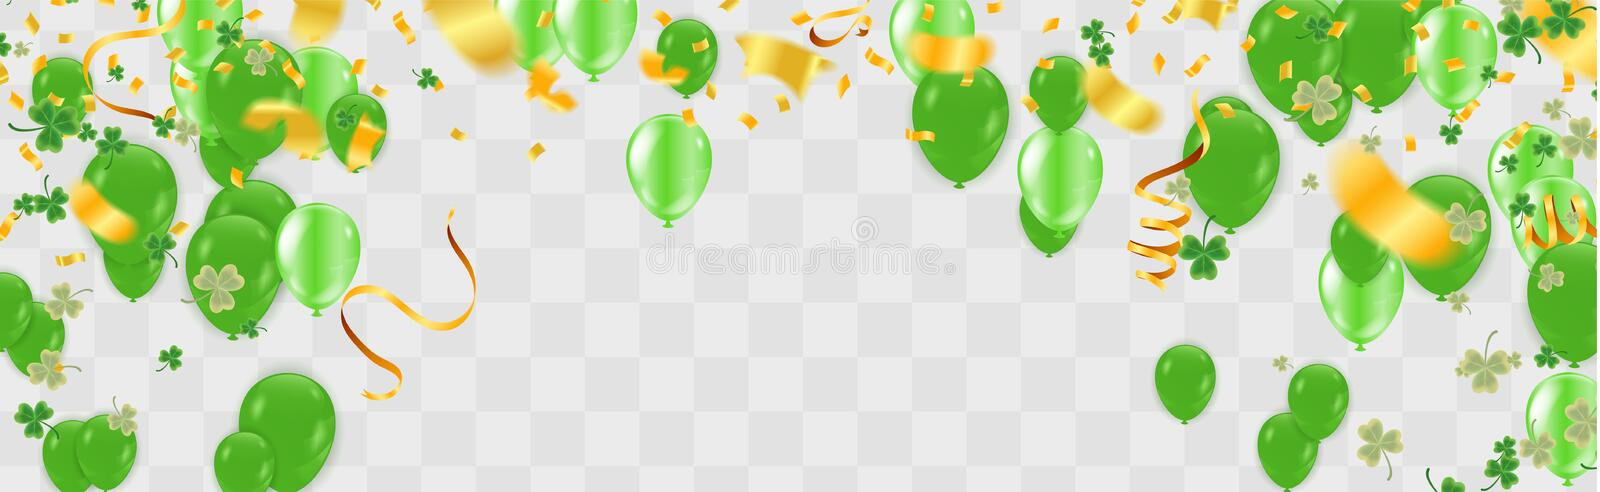 Party balloons illustration Clover leaves decorated transparent background of St Patrick`s Day. Poster or banner design royalty free illustration